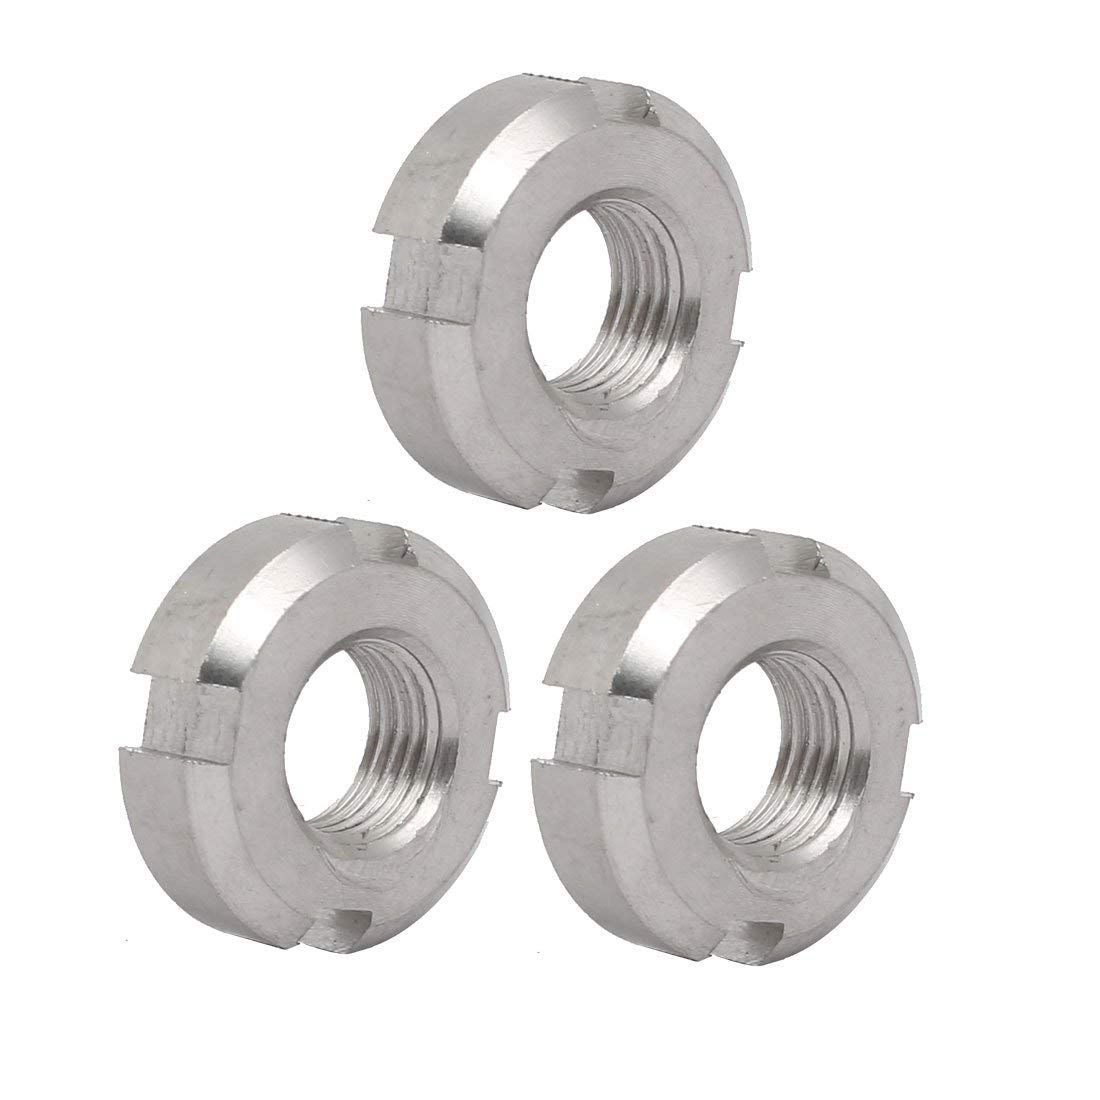 uxcell 3pcs M12x1.25mm 304 Stainless Steel Slotted Round Castle Nut for Hook Spanner